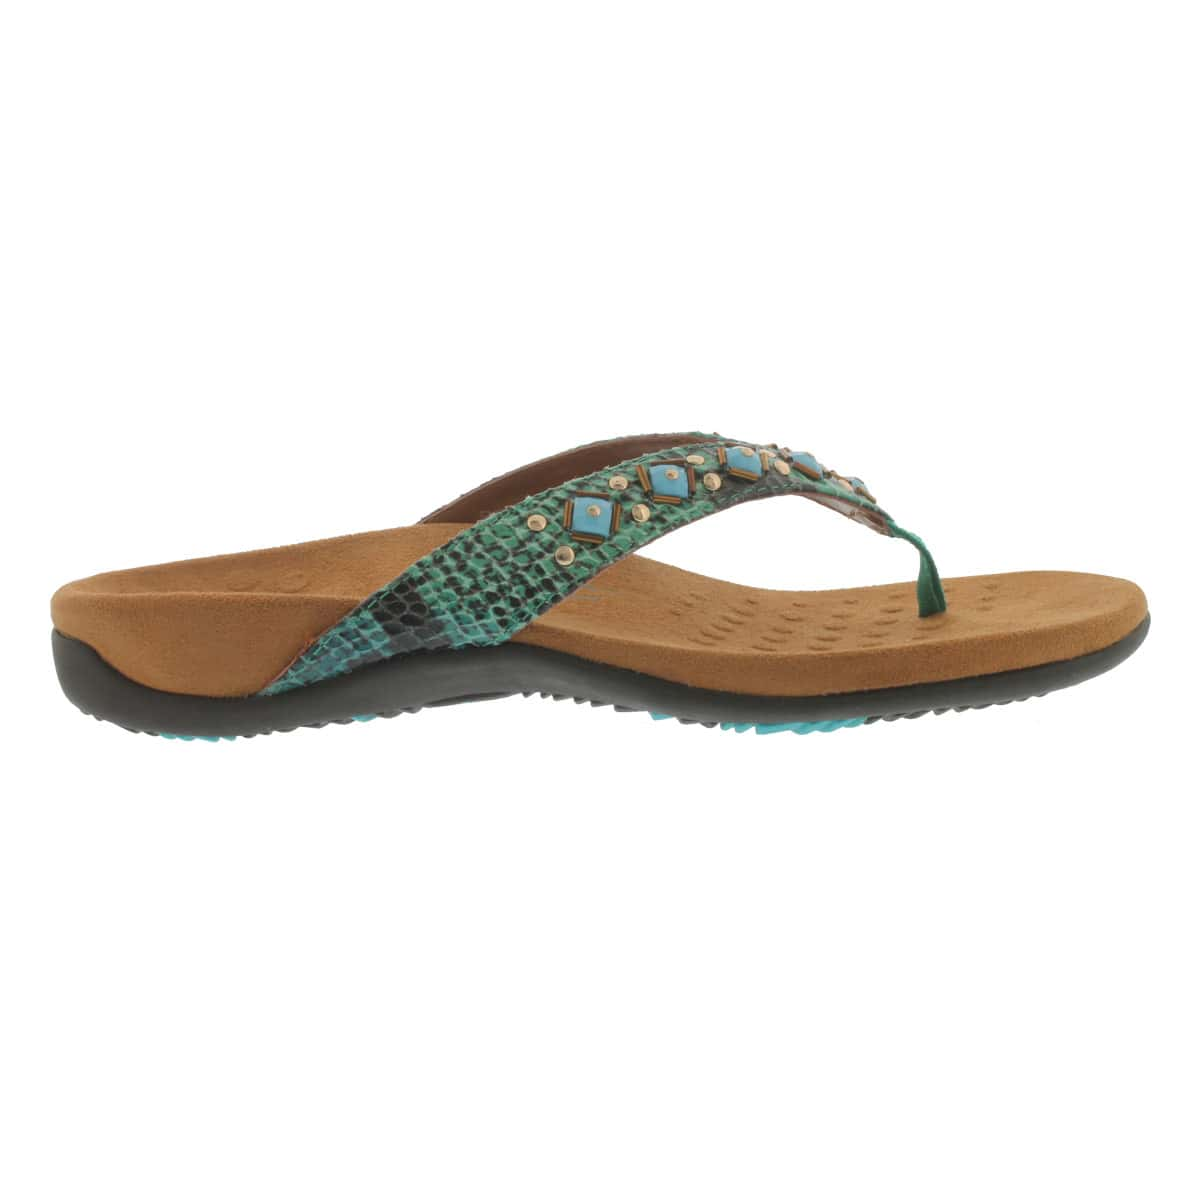 Book Of Womens Sandals With Arch Support In South Africa